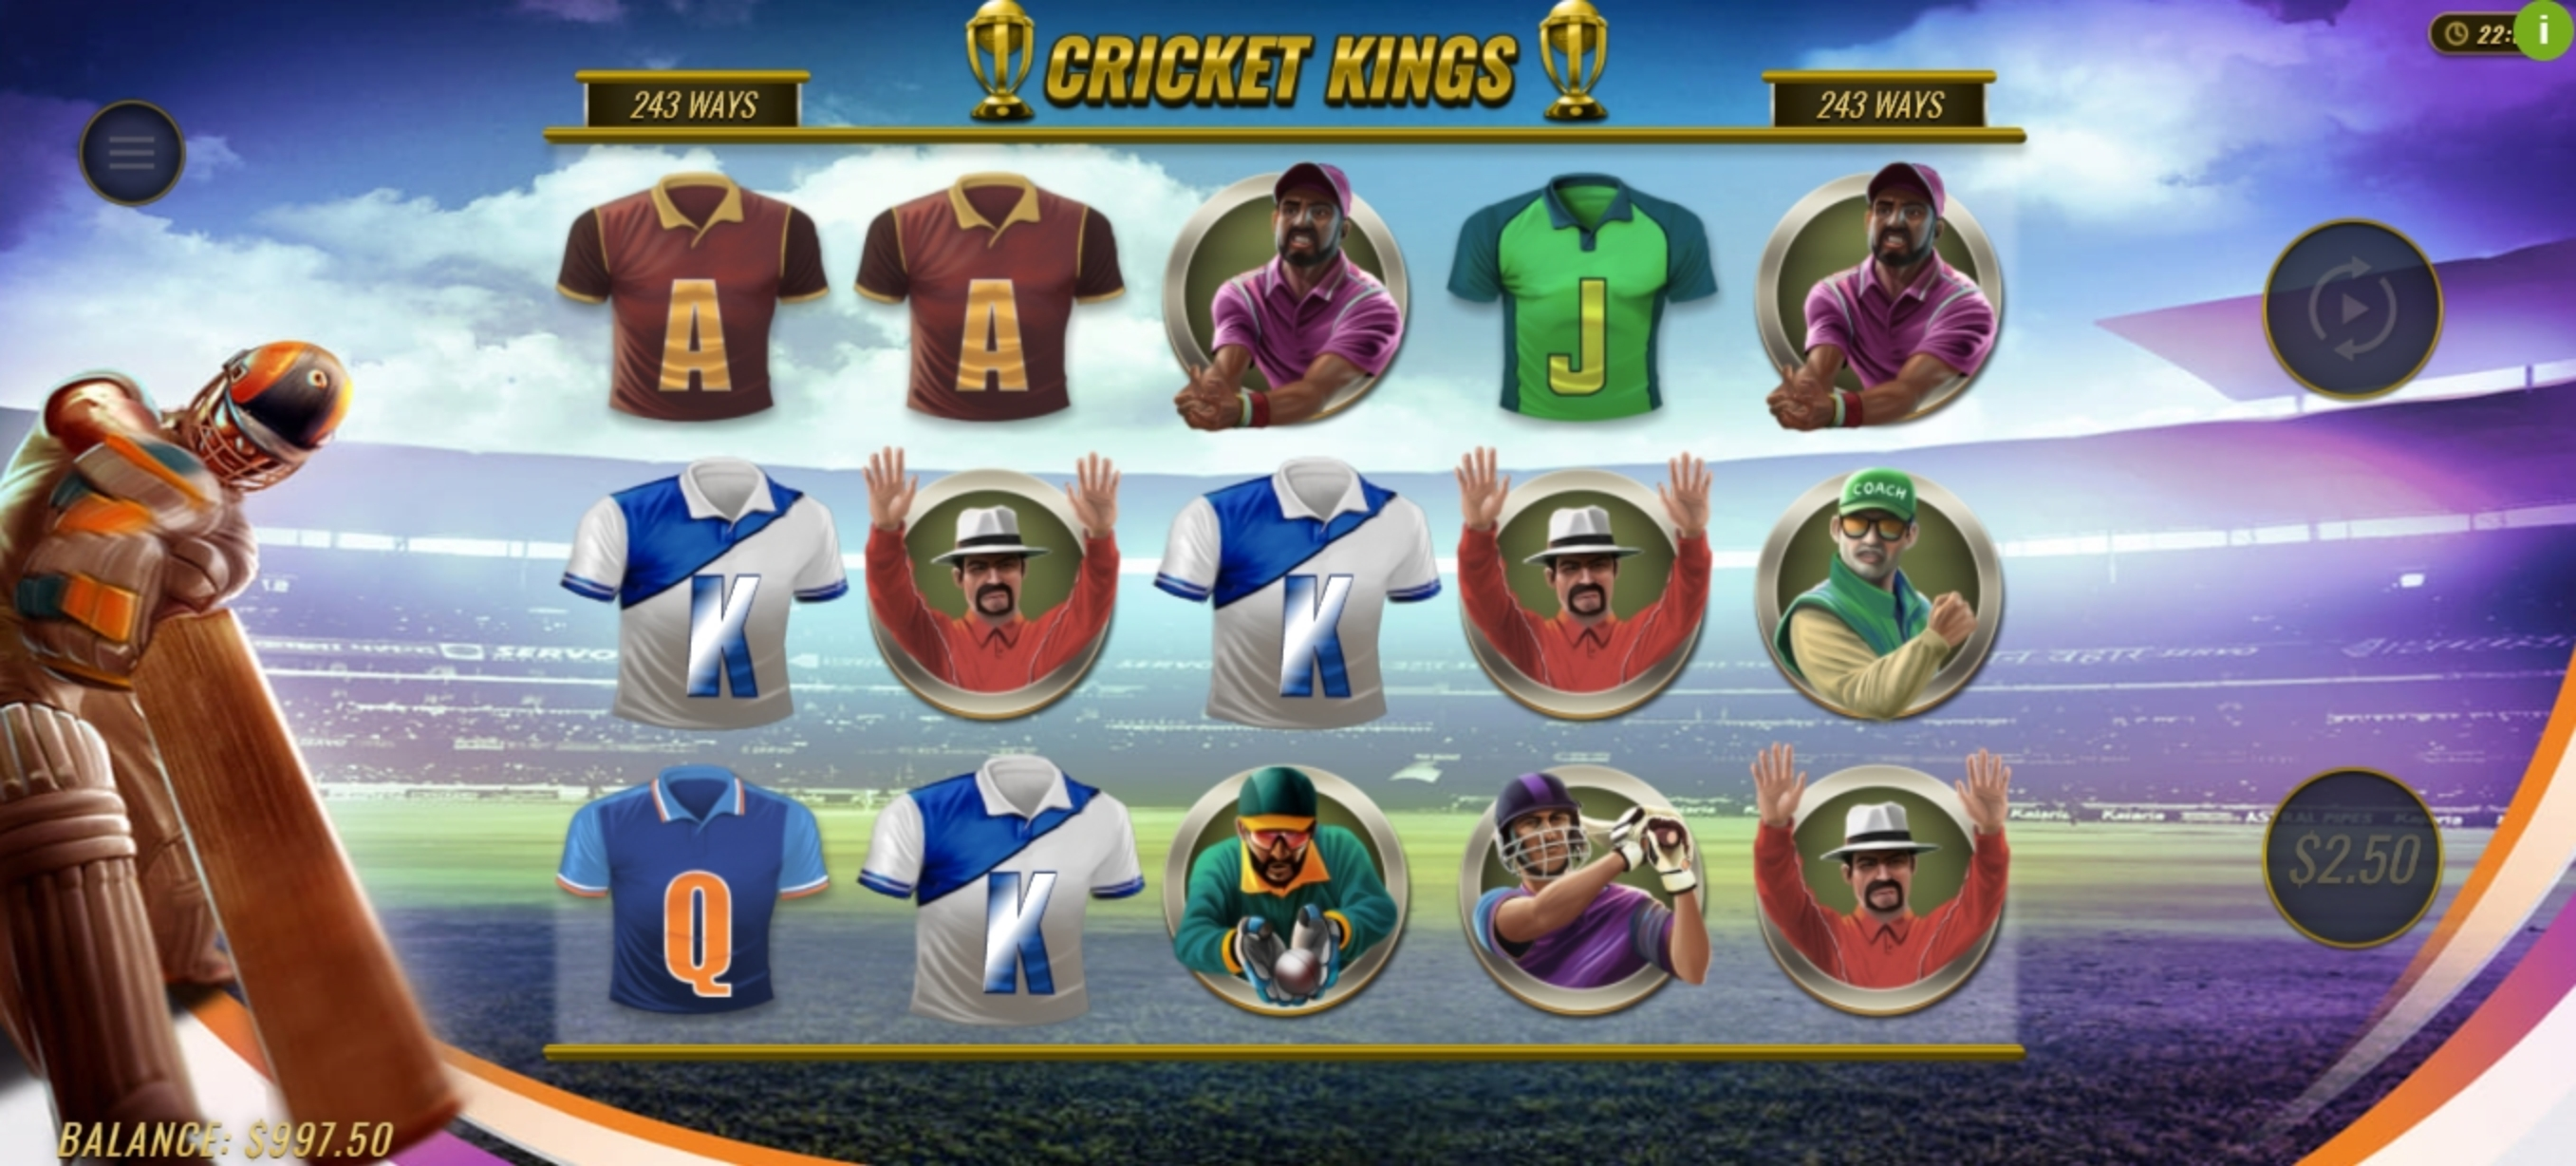 Win Money in Cricket Kings Free Slot Game by Woohoo